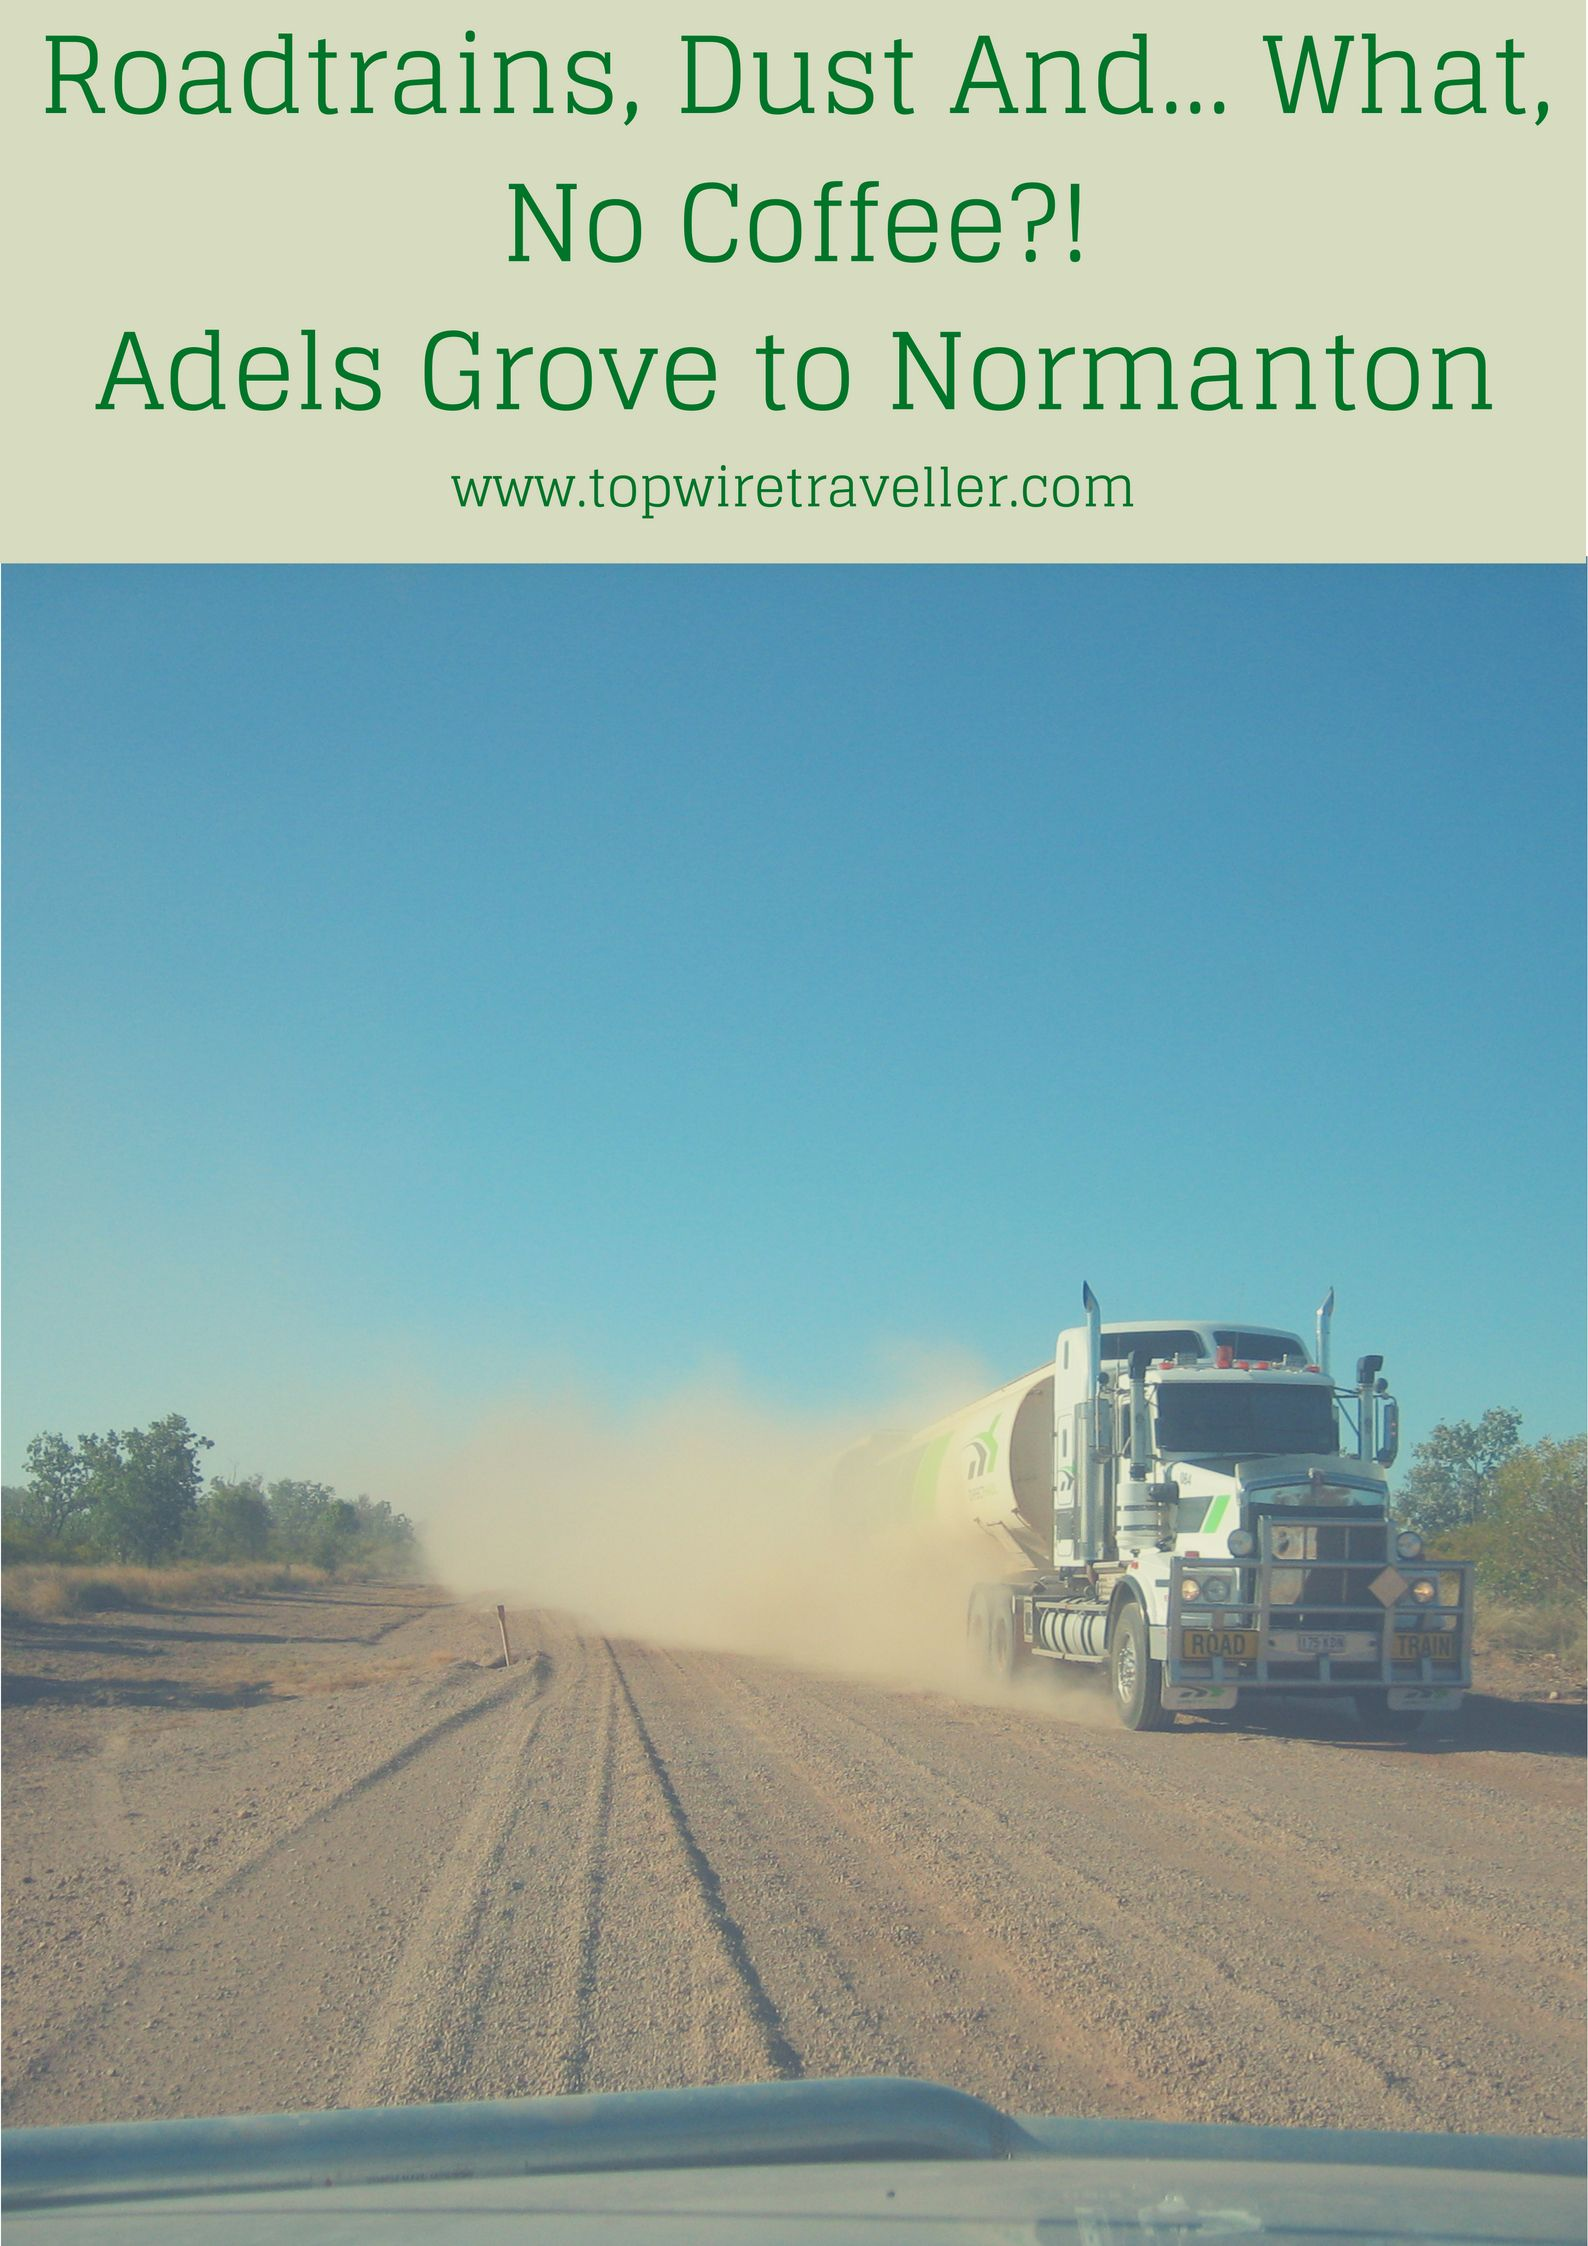 Adels grove to normanton queensland classic gulf country